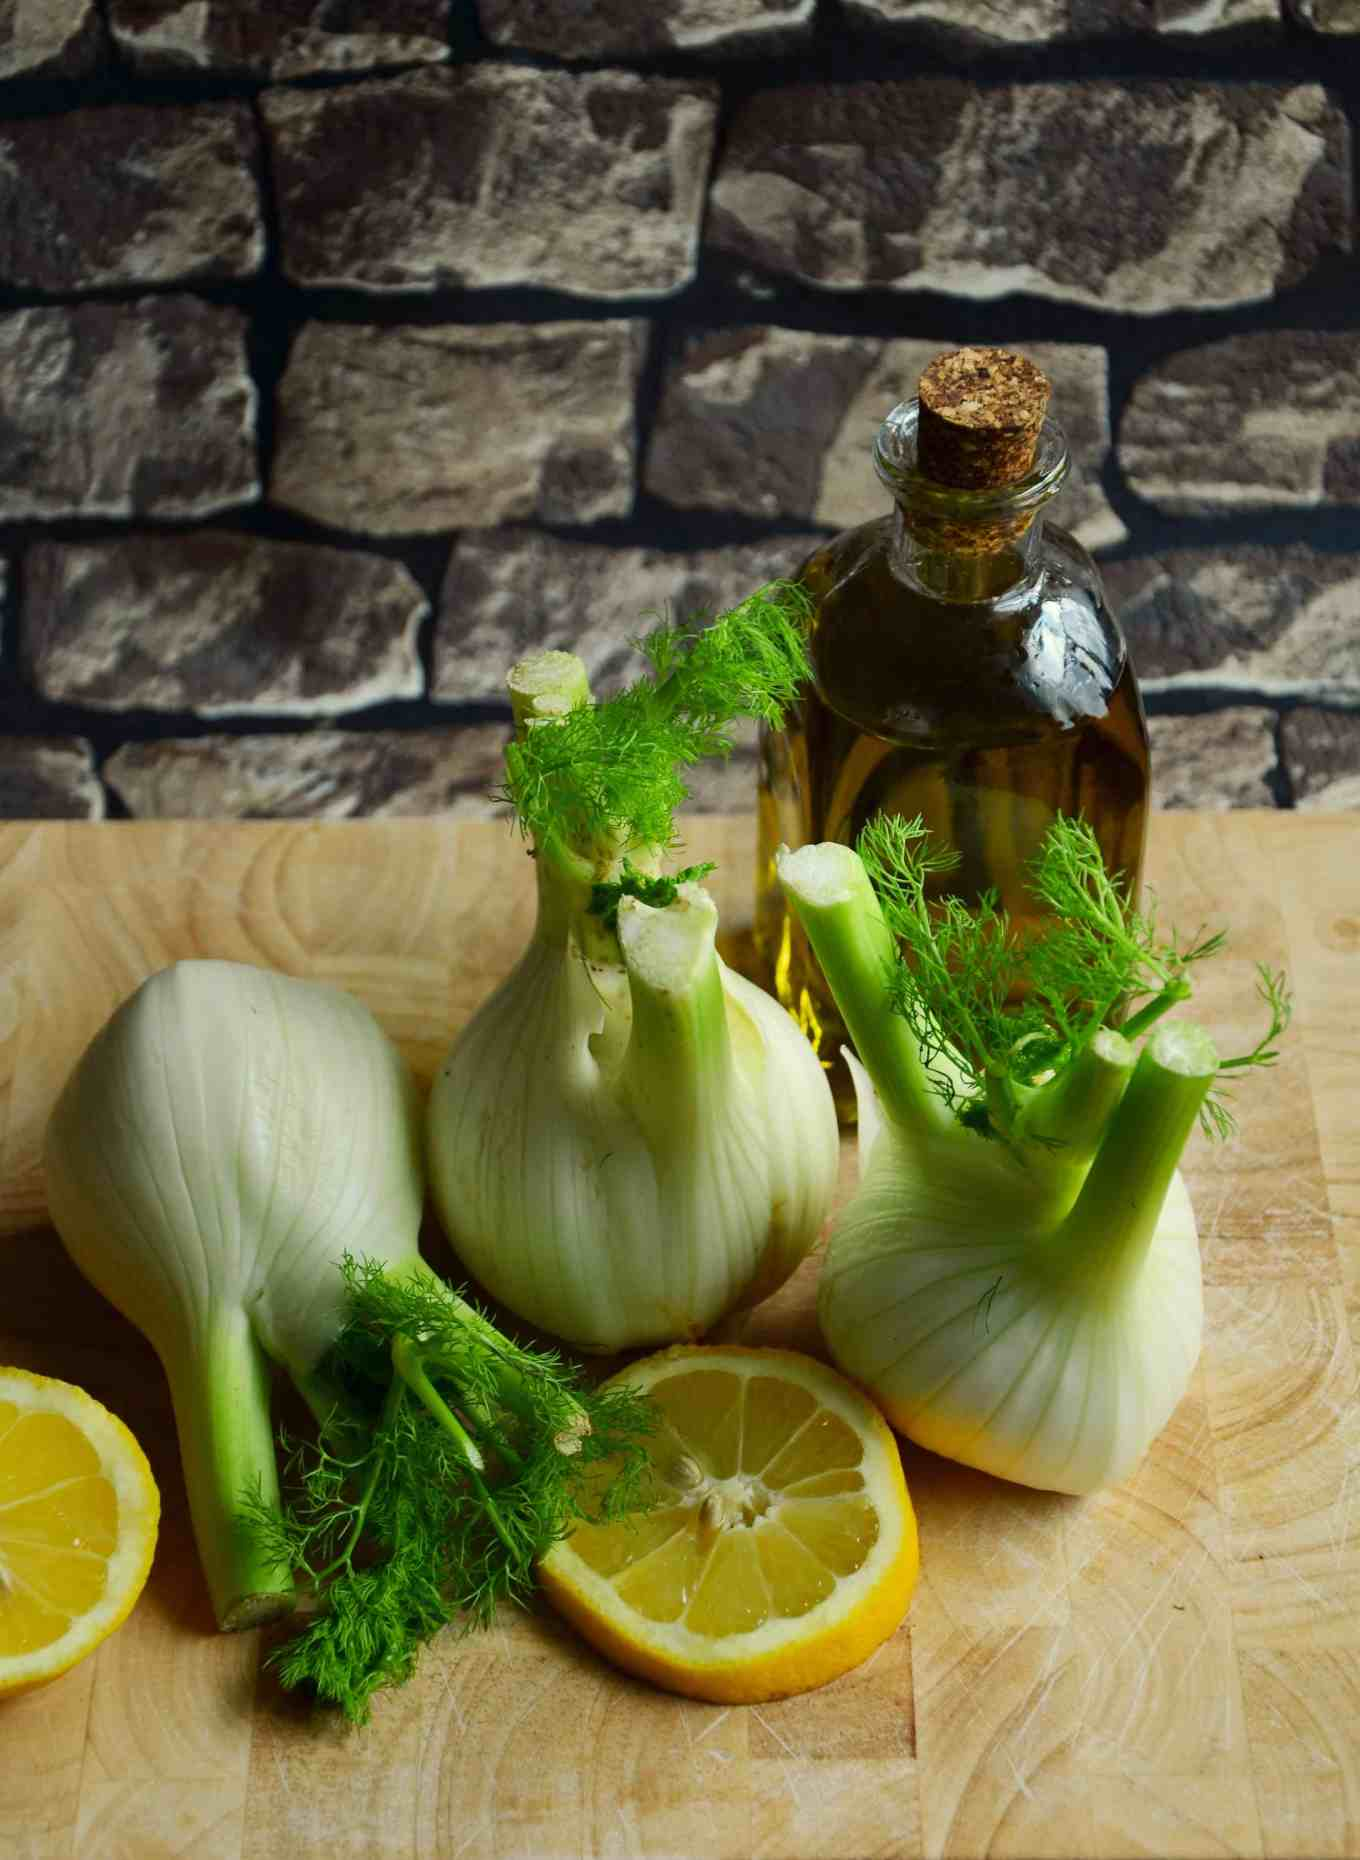 it is one of the best herbs because fennel is easy to grow and easy to cook with